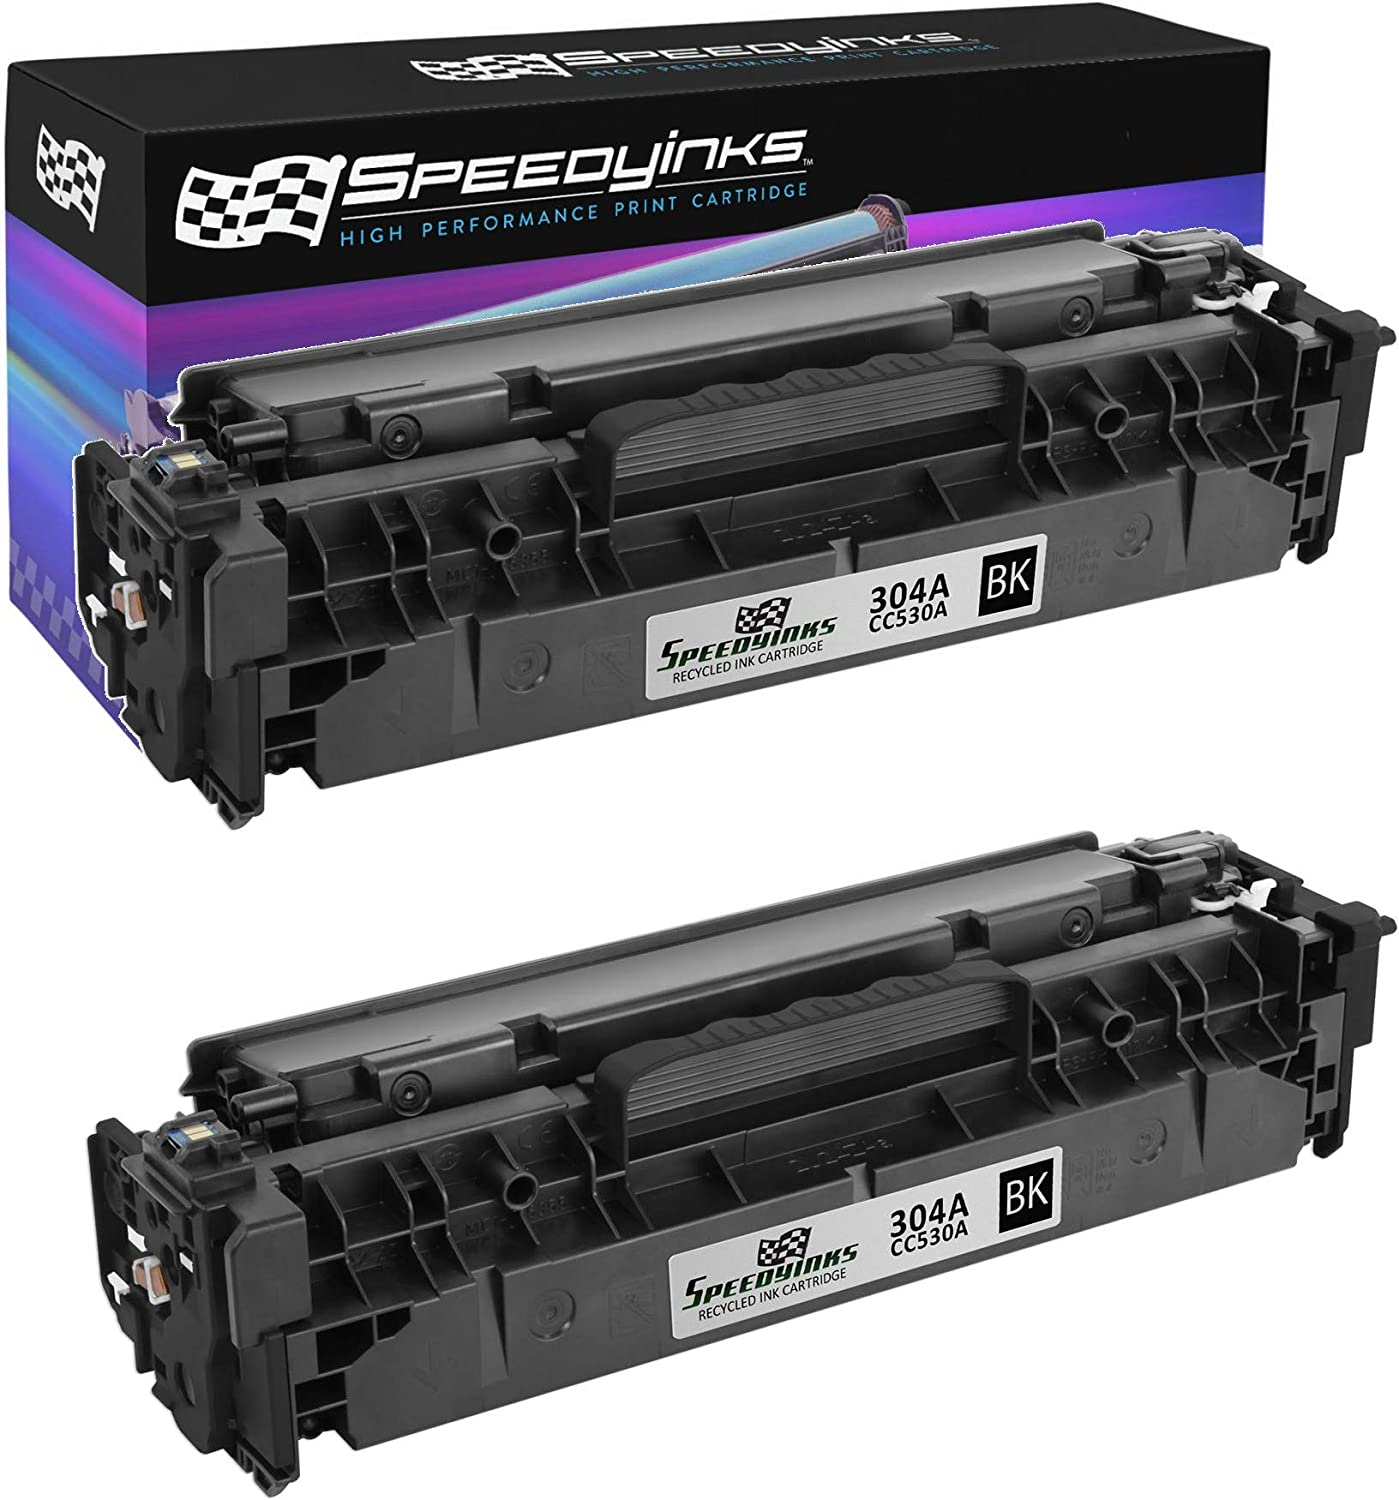 Speedy Inks Remanufactured Toner Cartridge Replacement for HP 304A / CC530A (Black, 2-Pack)